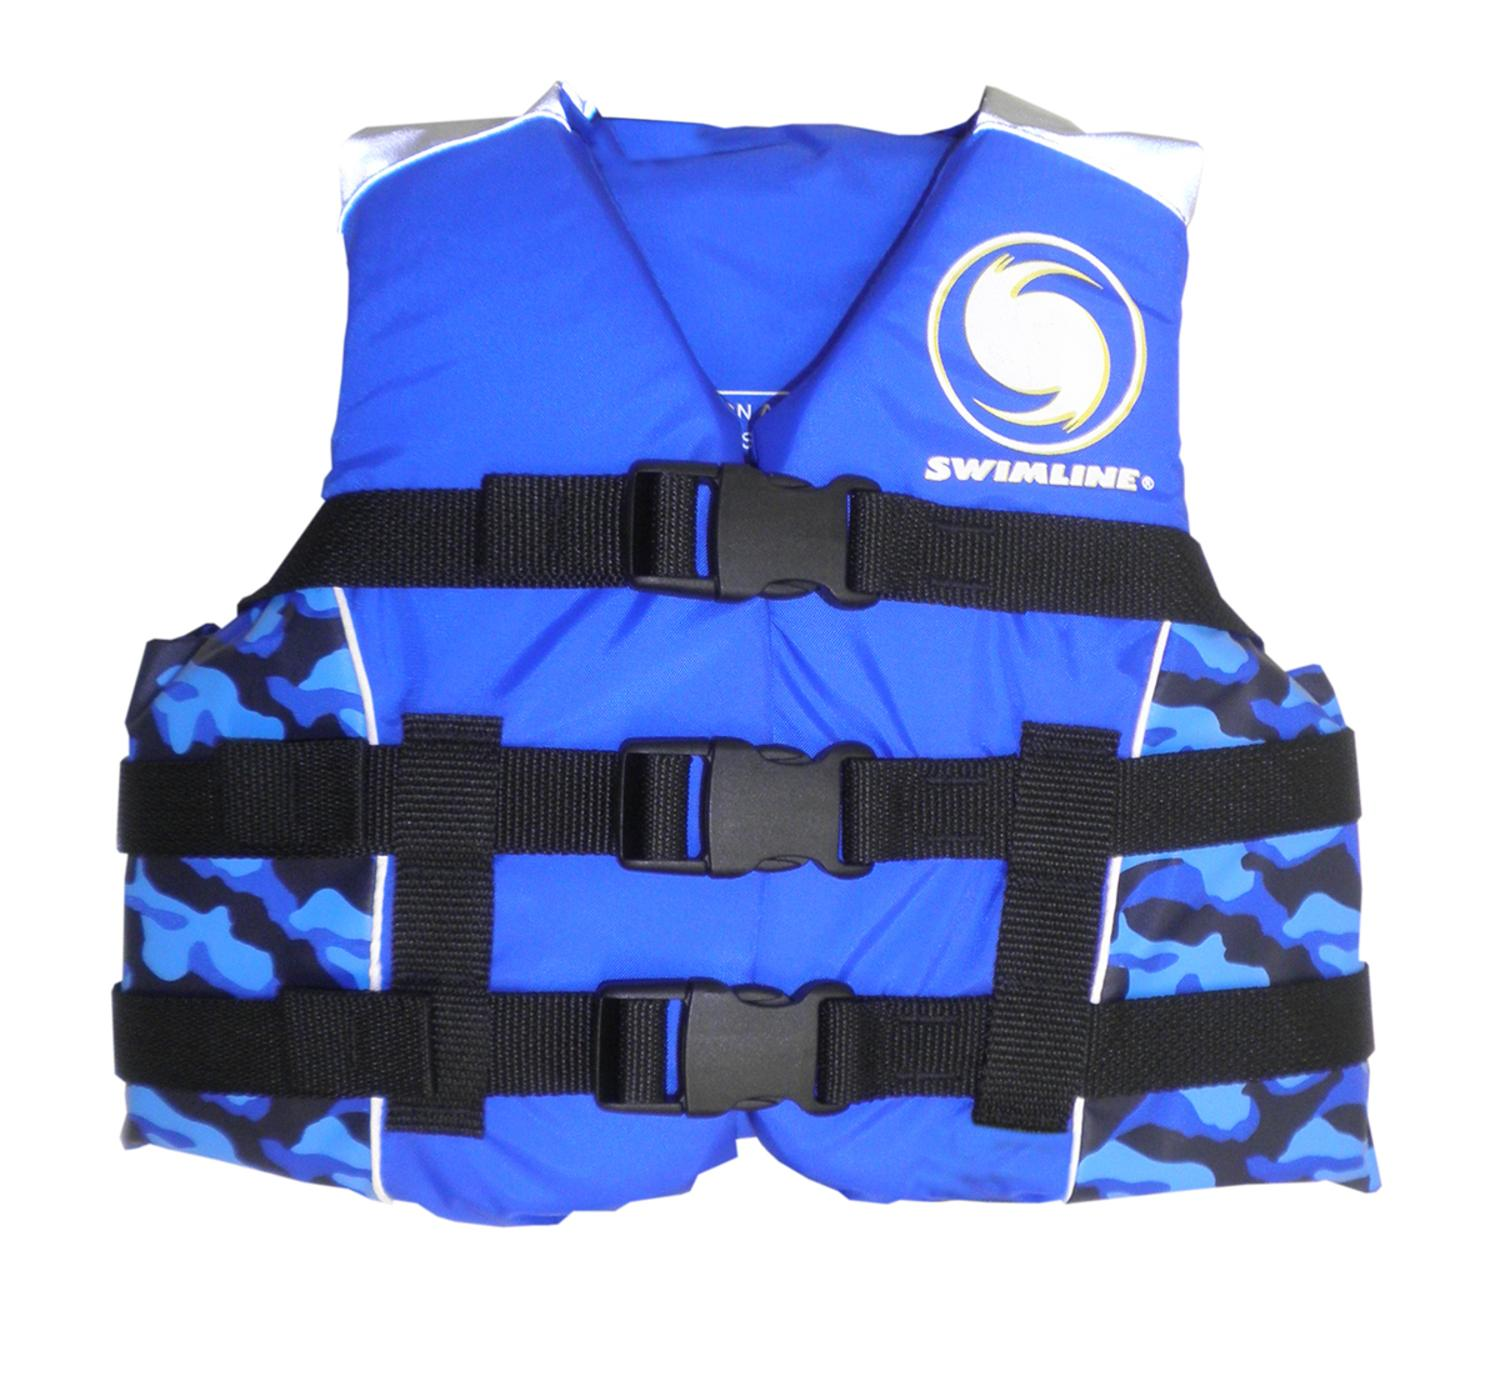 USCG Approved Water or Swimming Pool Cool in Blue Camouflage Child Life Vest for Boys Up to 90lbs by Swim Central